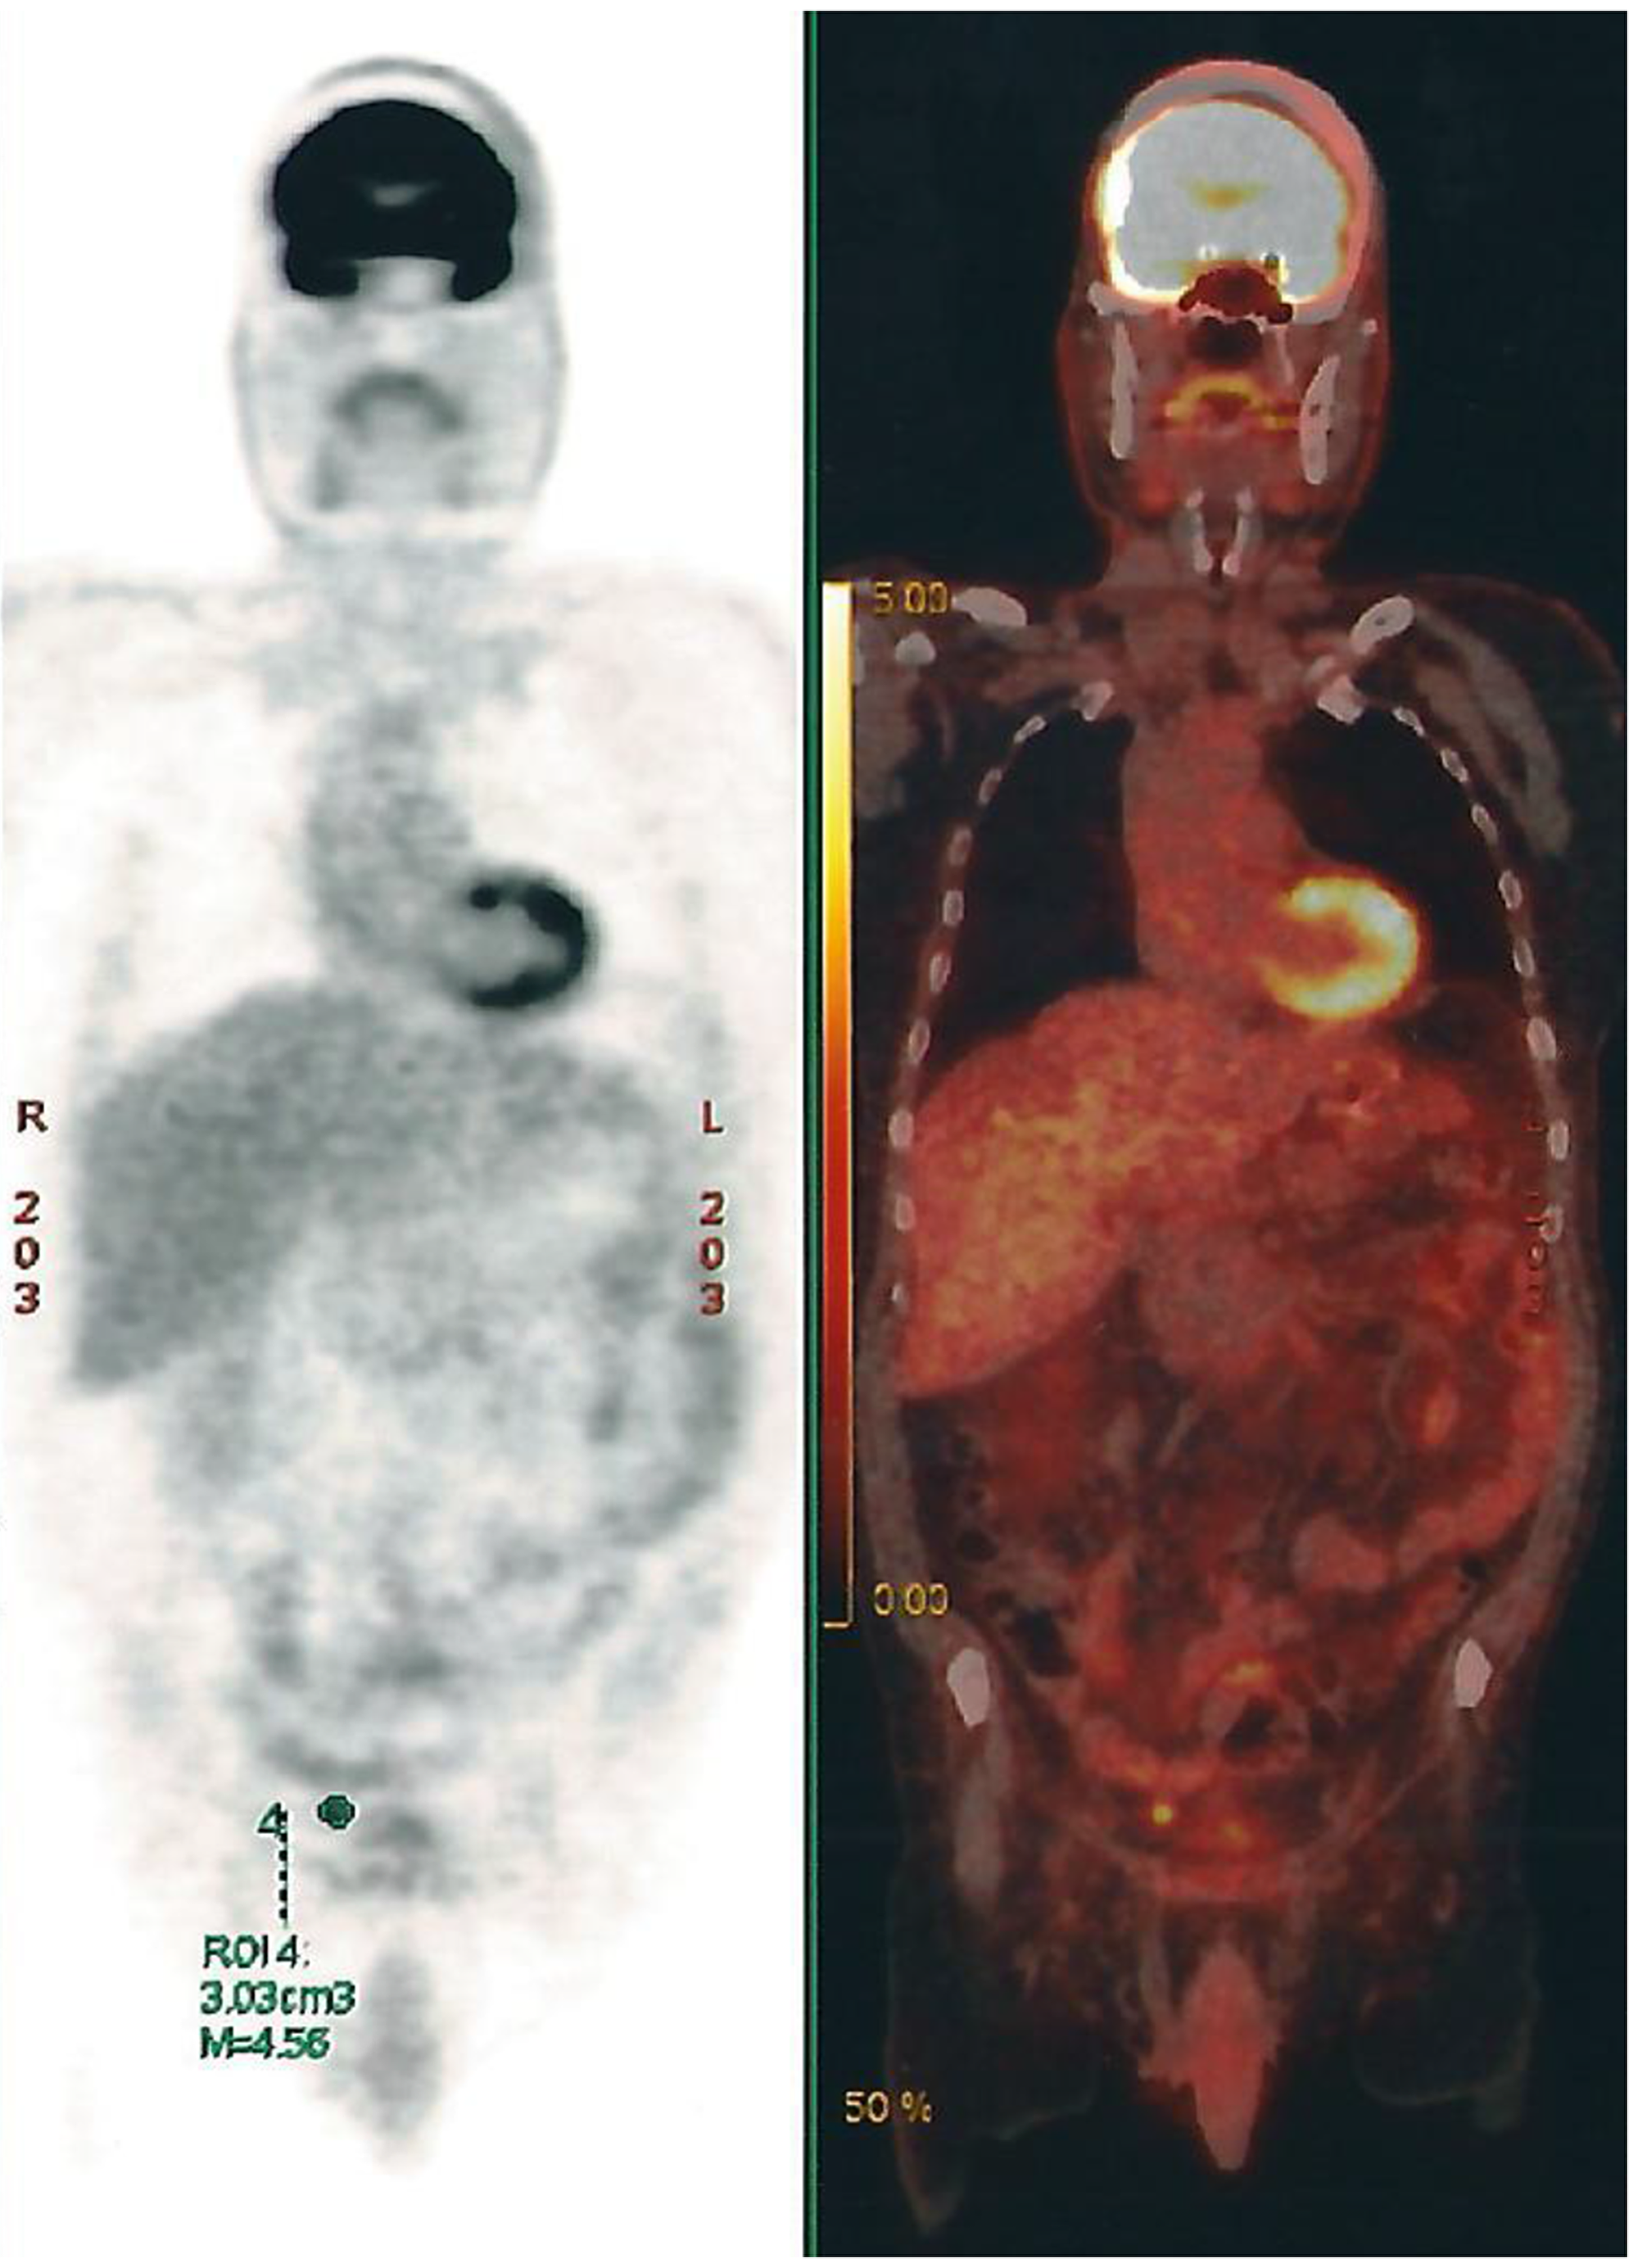 PET-CT Scan showing multiple retroperitoneal, pelvic and abdominal lymph nodes.